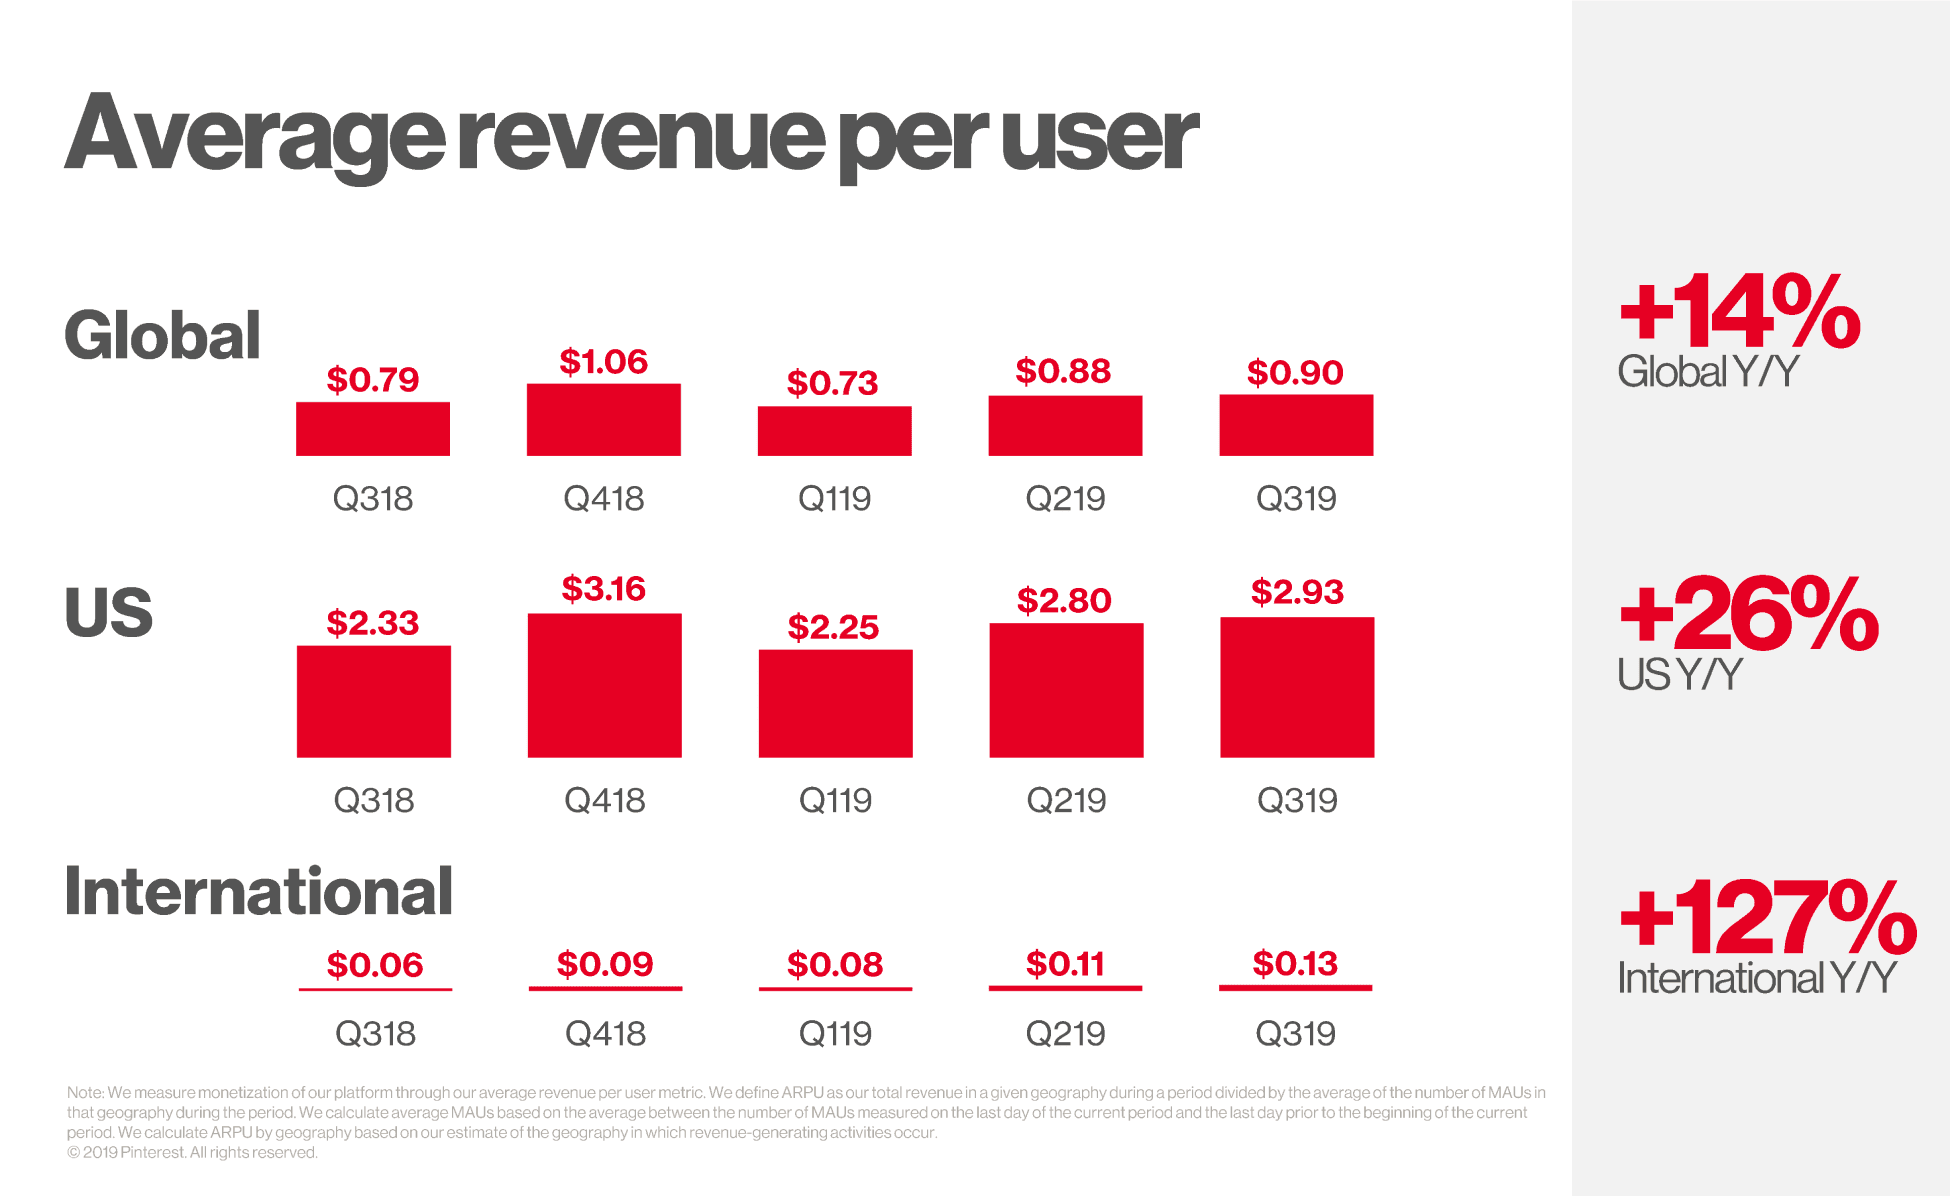 Pinterest average revenue per user - chart